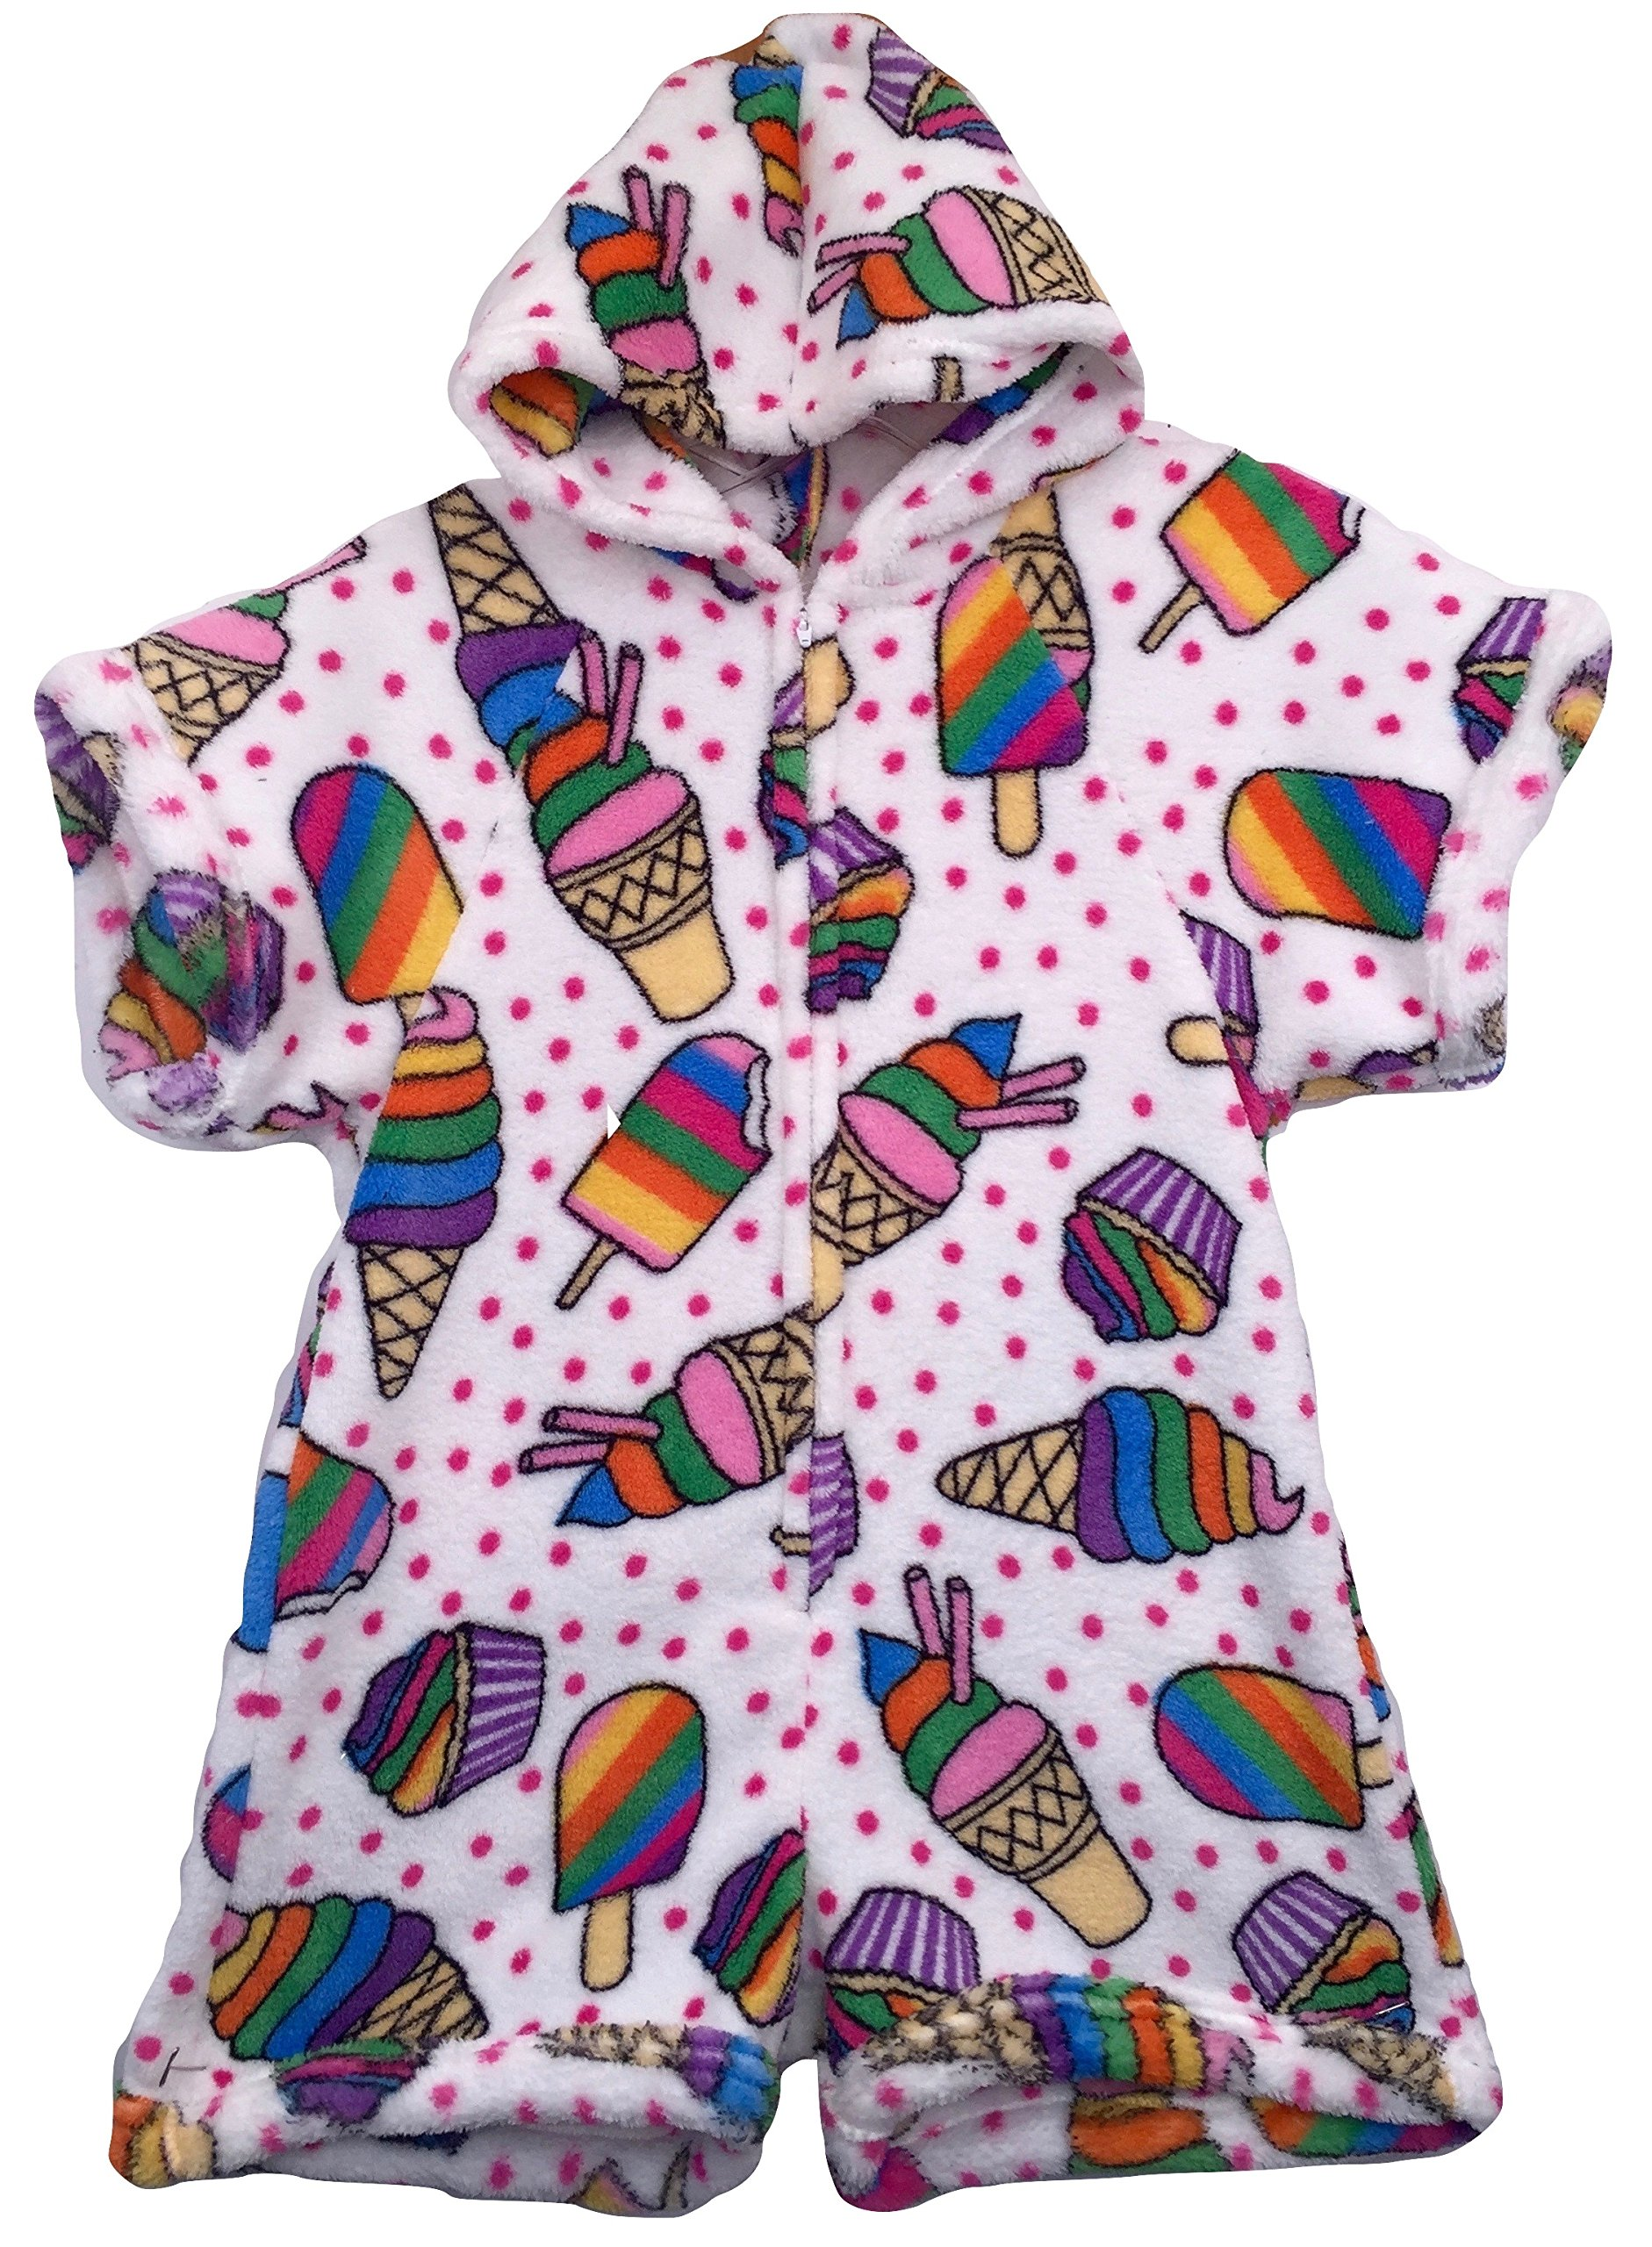 Made with Love and Kisses Fuzzy Plush Romper with Hood - White Rainbow Desserts - 10/12